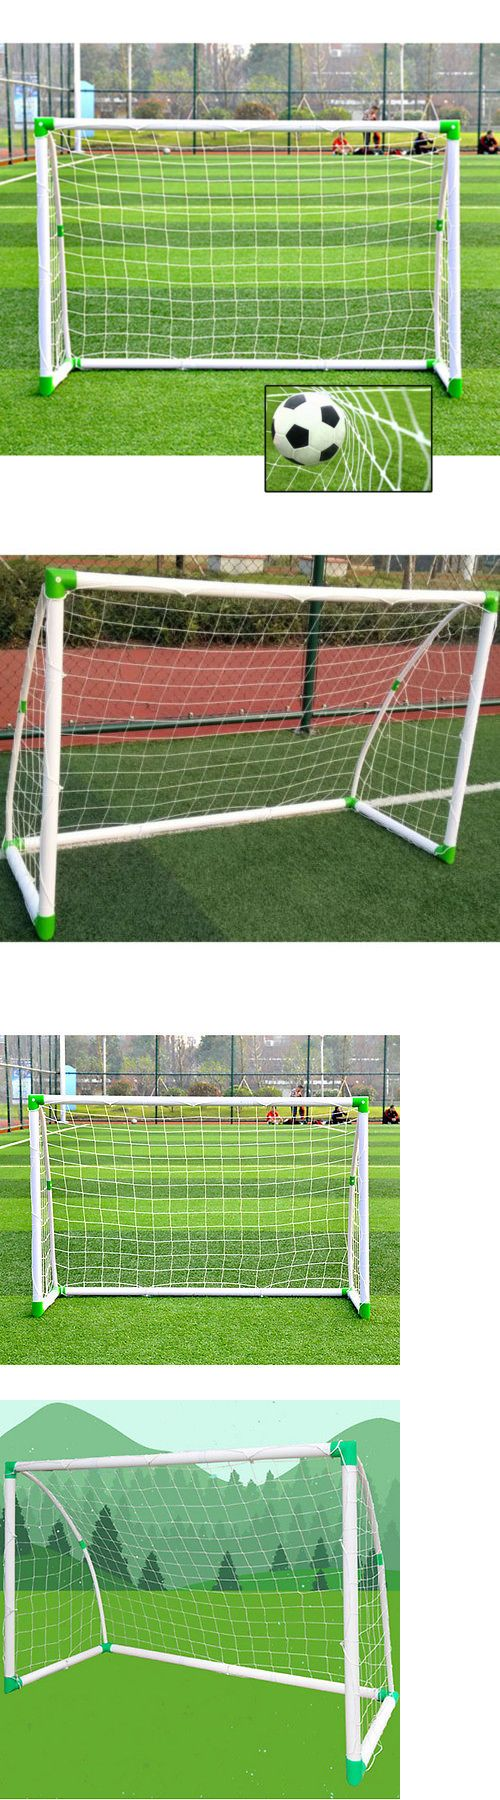 Goals and Nets 159180: Outdoor Sports Football Training Set Portable Soccer Goal, 6 X 4 For Child Gift -> BUY IT NOW ONLY: $34.99 on eBay!